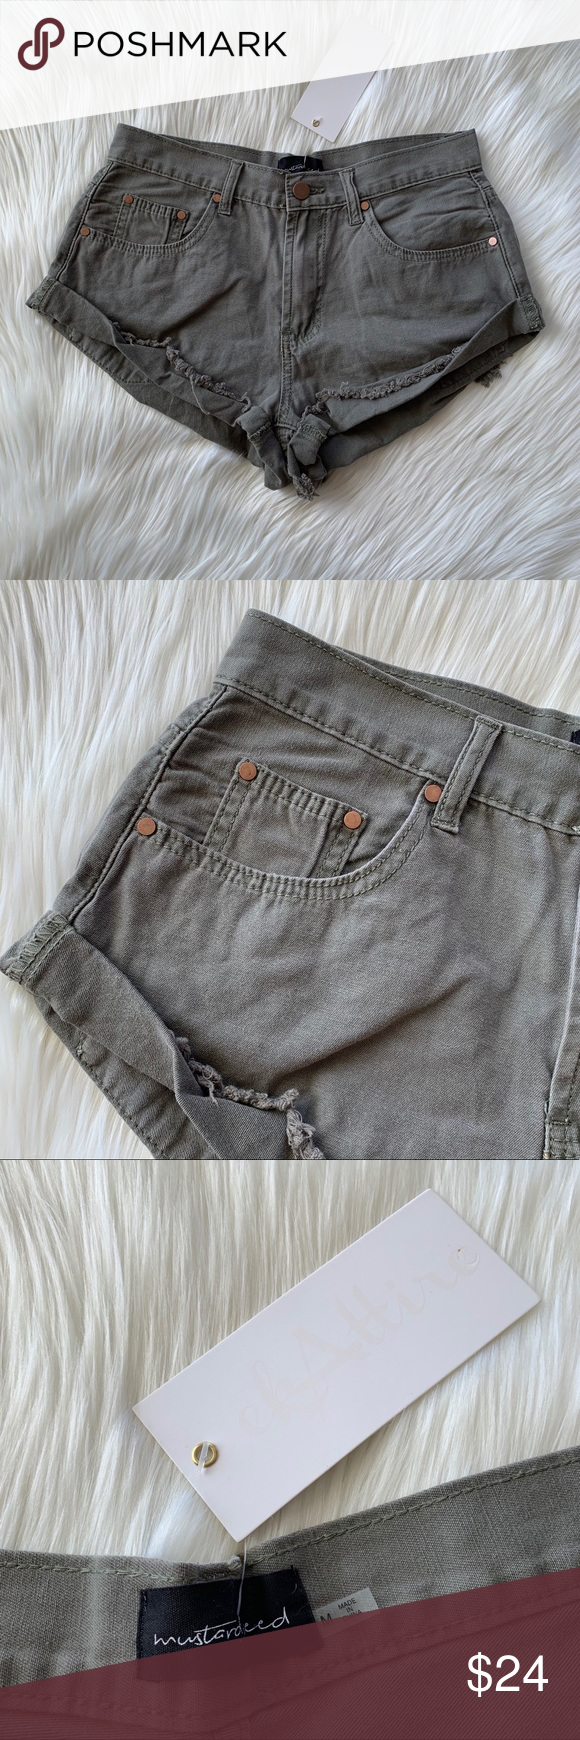 9ead61c7ad Mustard Seed Shorts Cuffed shorts with copper accents. Brand new with tags;  only flaw